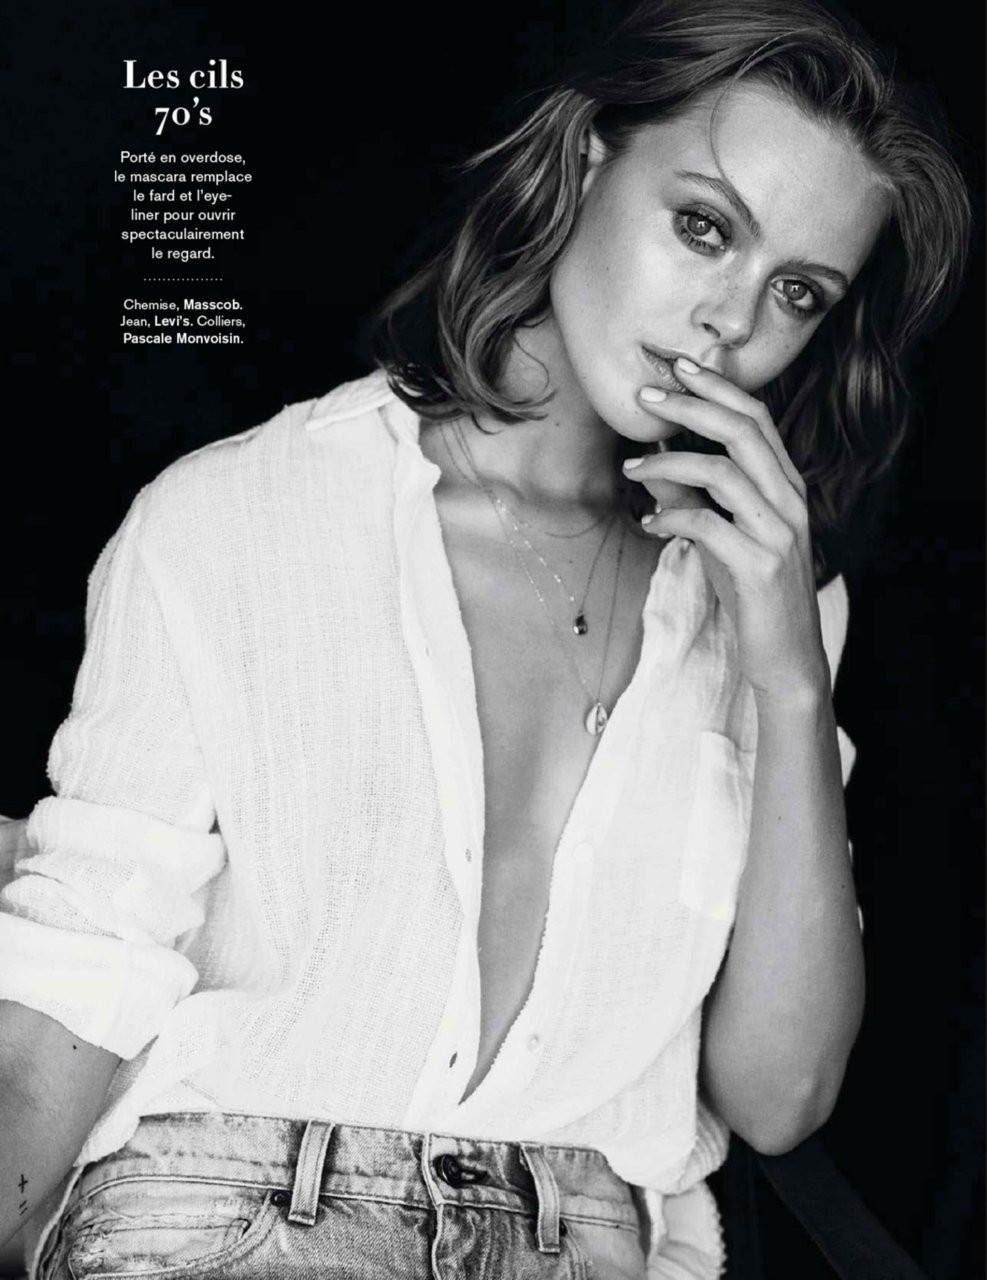 Frida Gustavsson Topless 18 TheFappening.nu